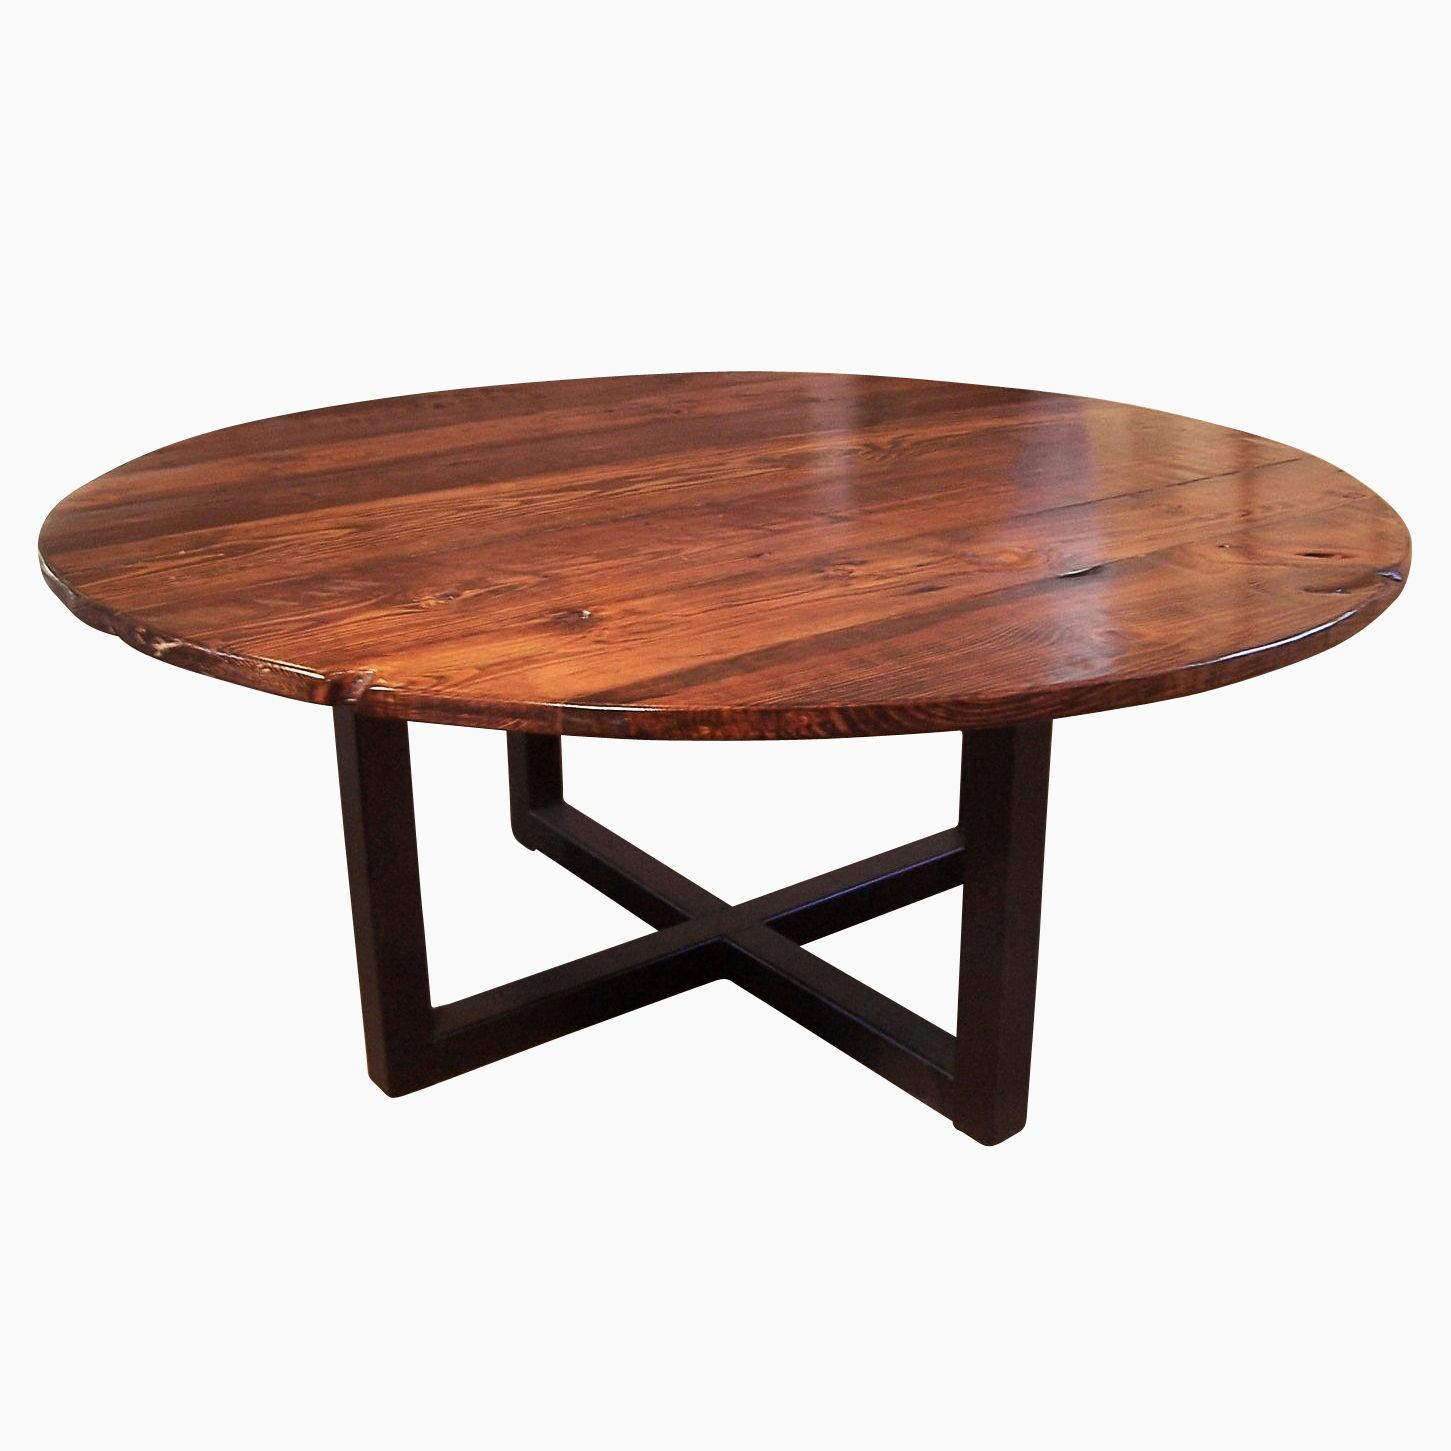 Buy a Hand Crafted Round Coffee Table With Industrial Metal